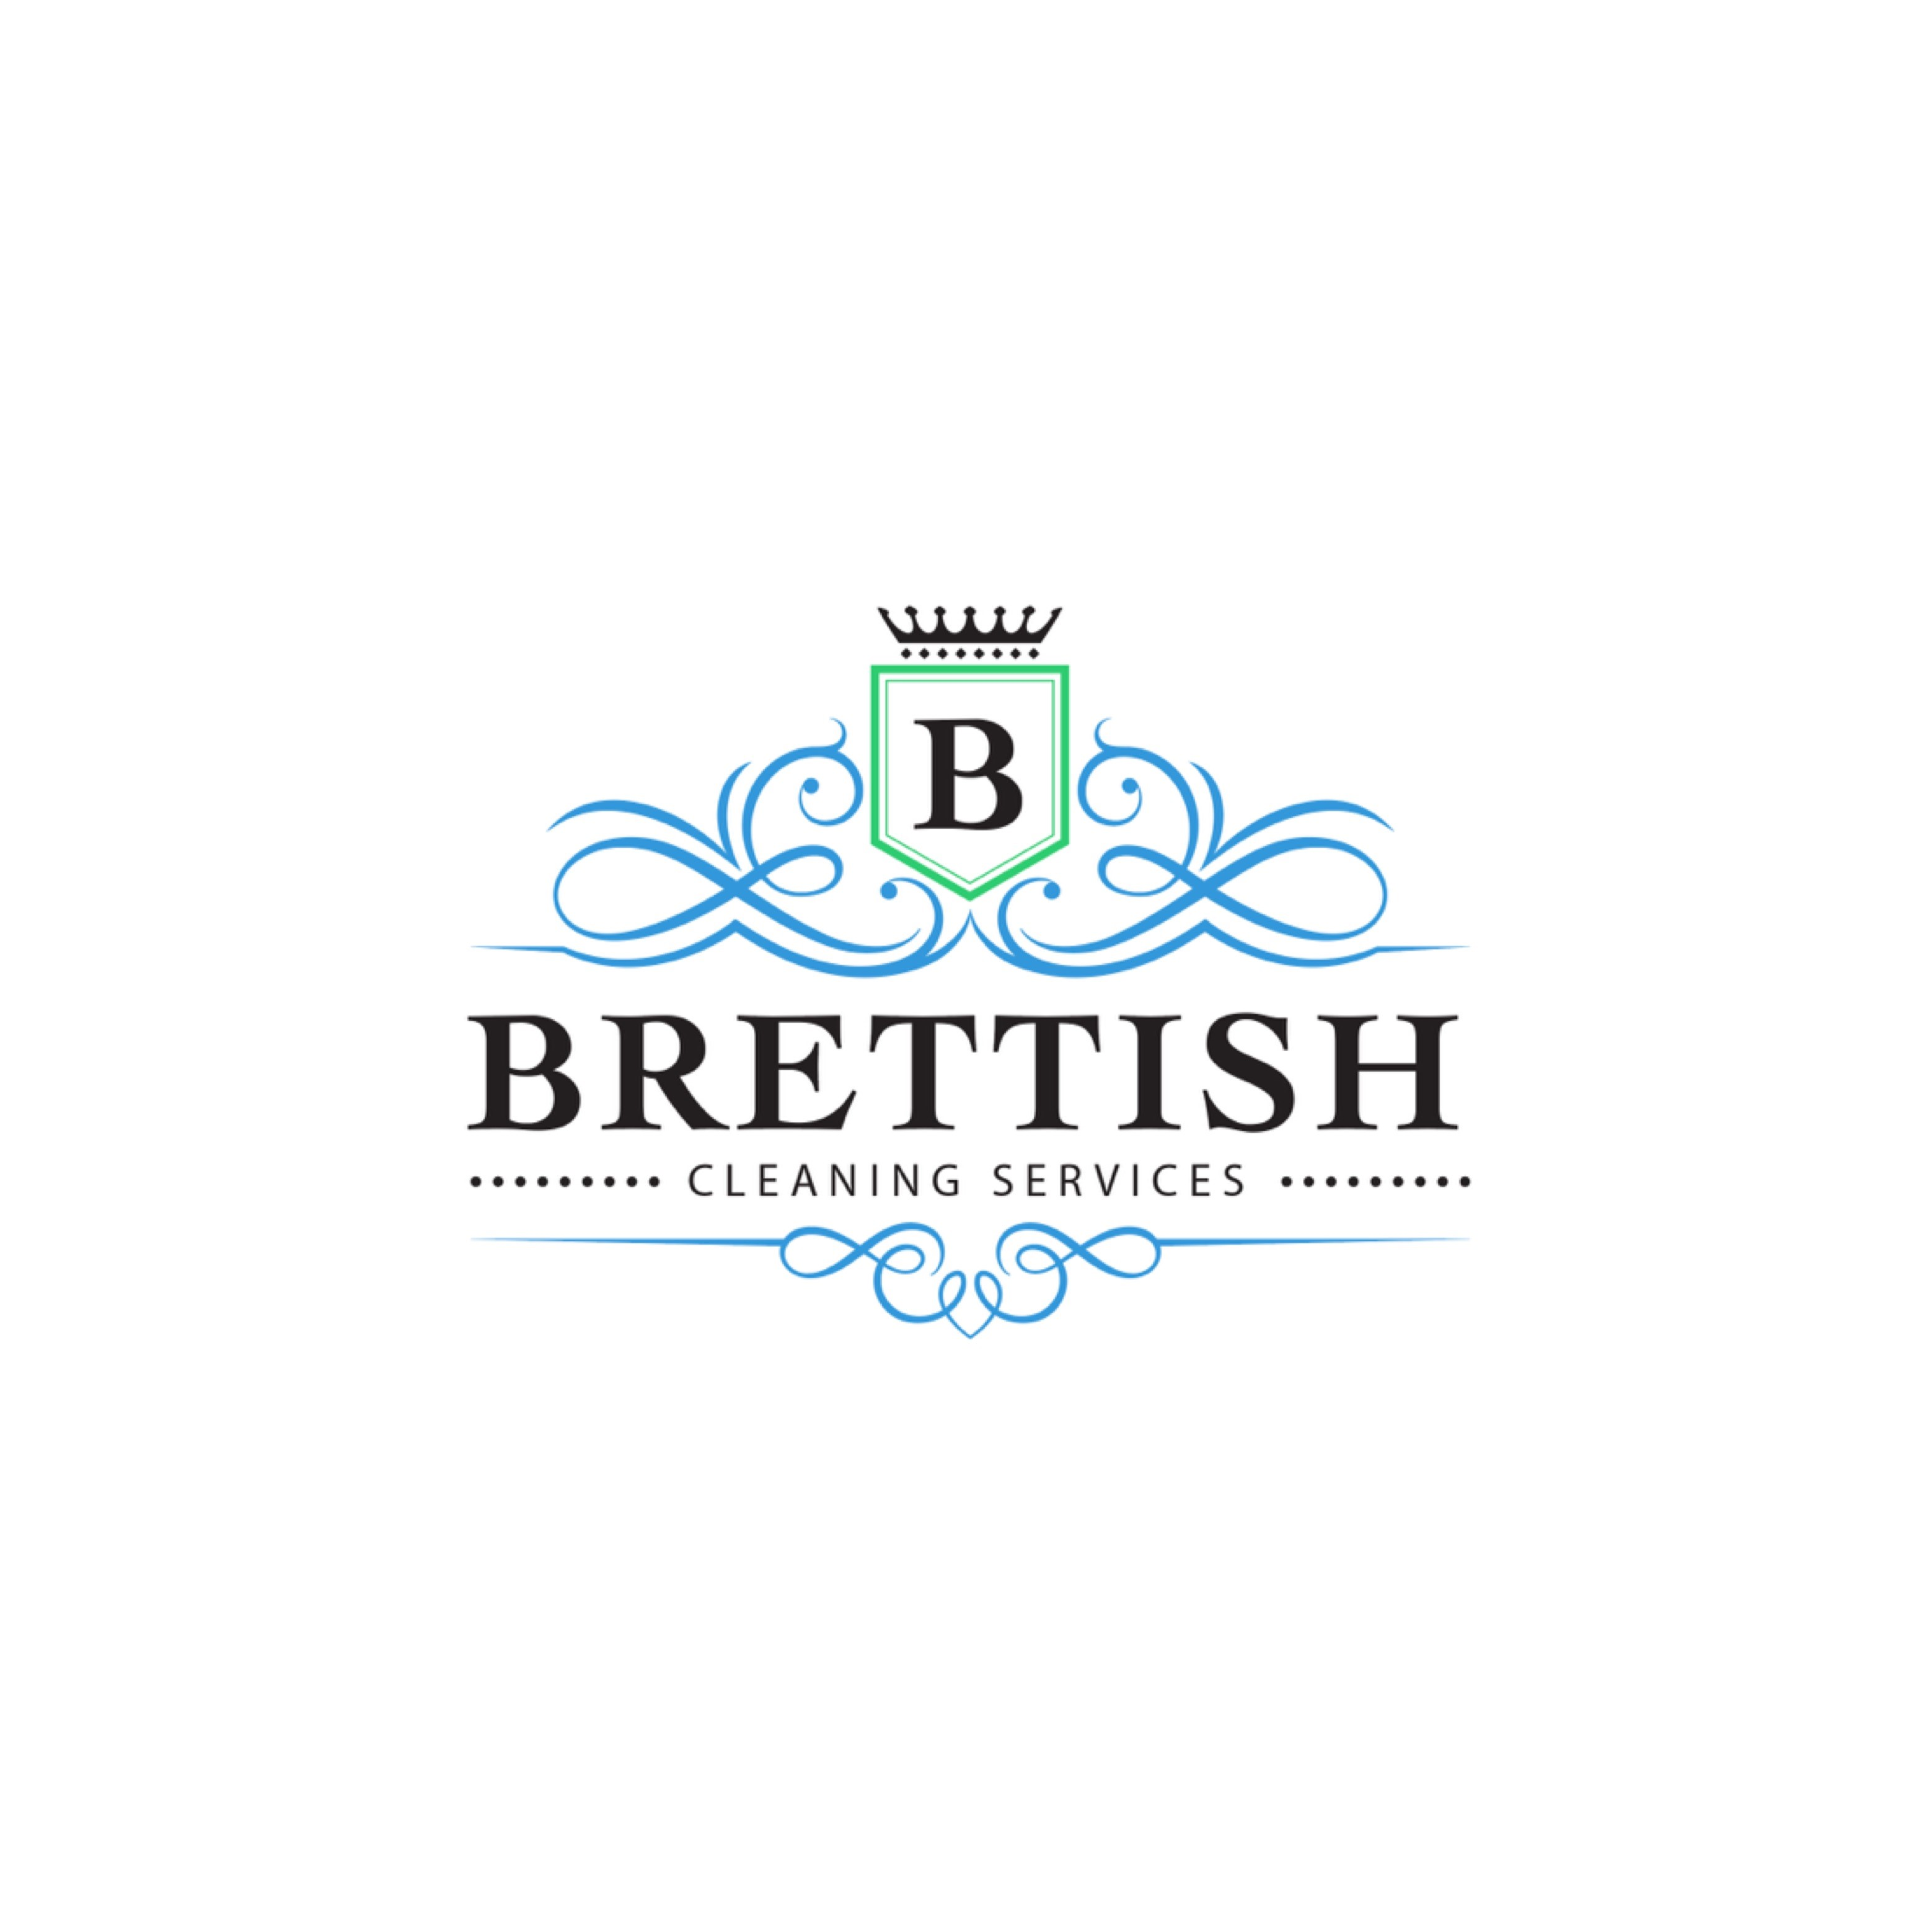 Brettish Cleaning Services